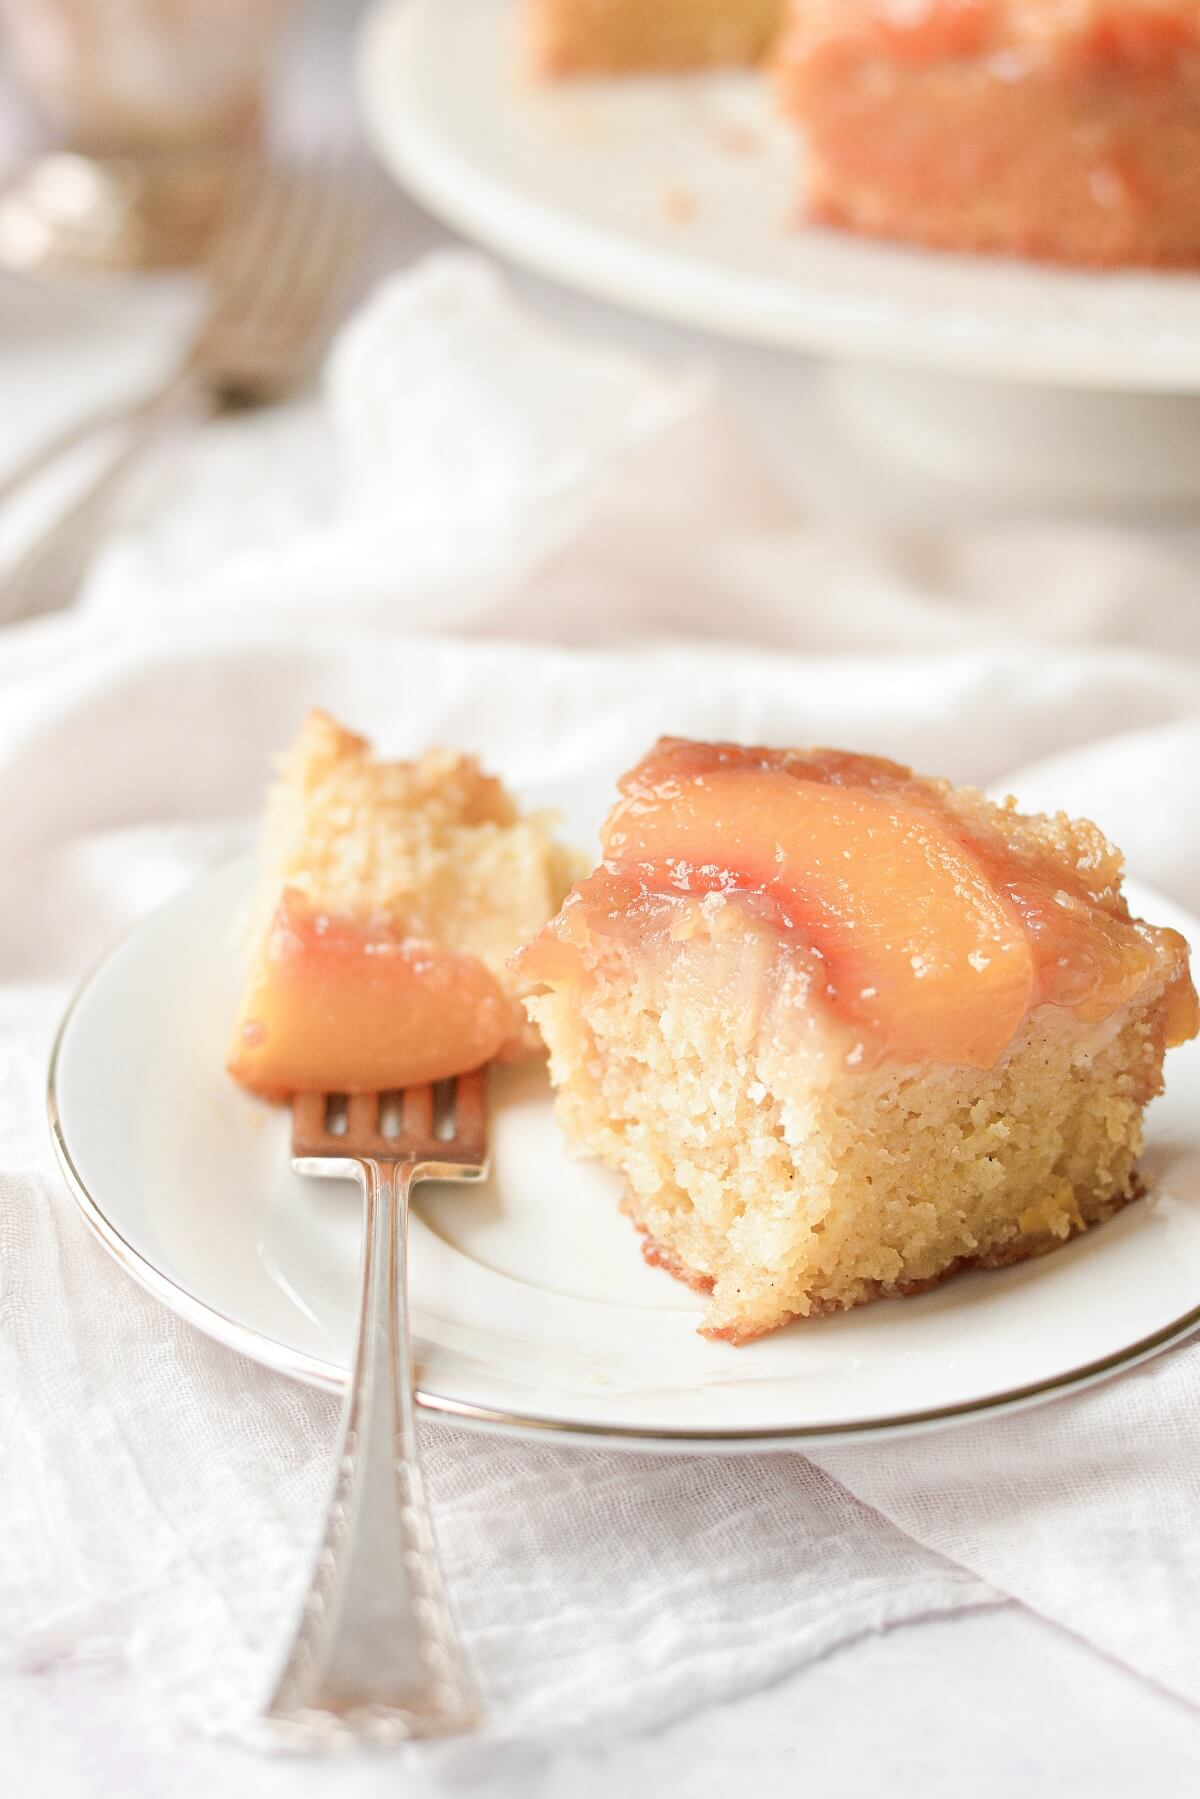 A slice of peach upside down cake with a bite taken.